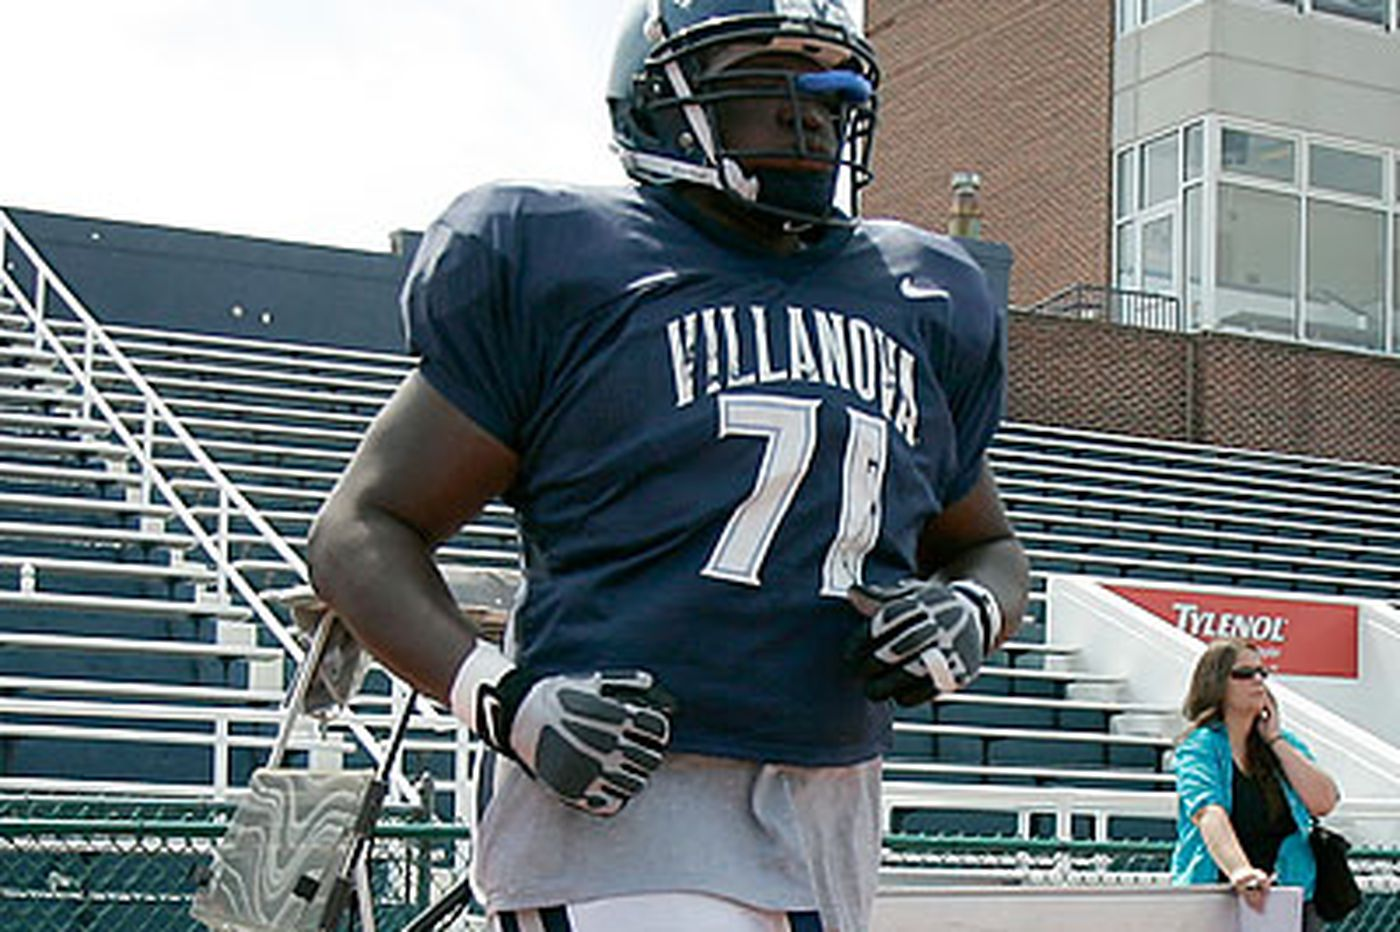 Villanova's Ijalana a possible draft pick for Eagles